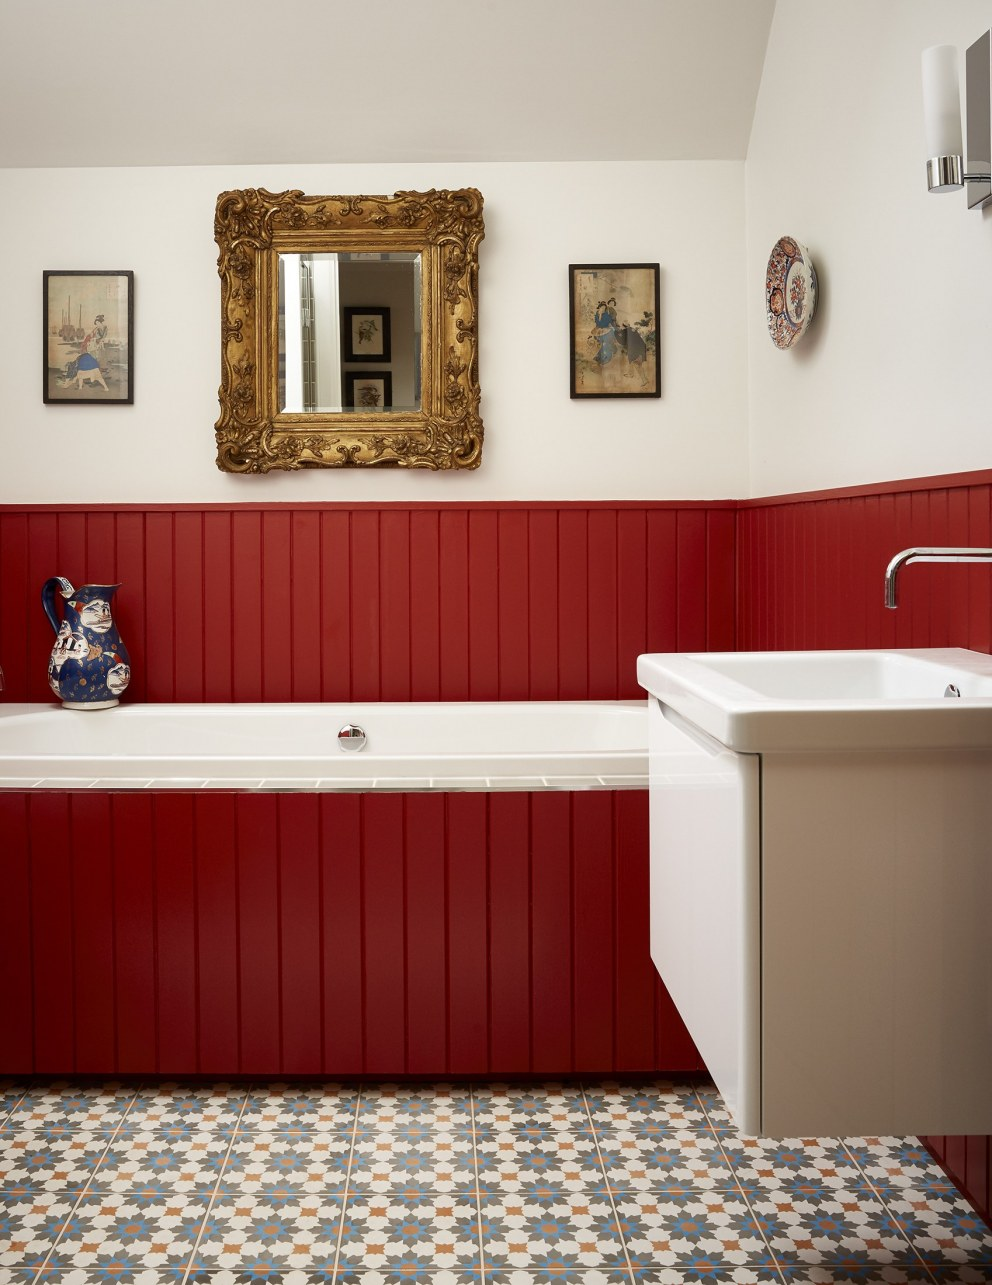 Scottish Holiday Cottages | Red Bathroom | Interior Designers